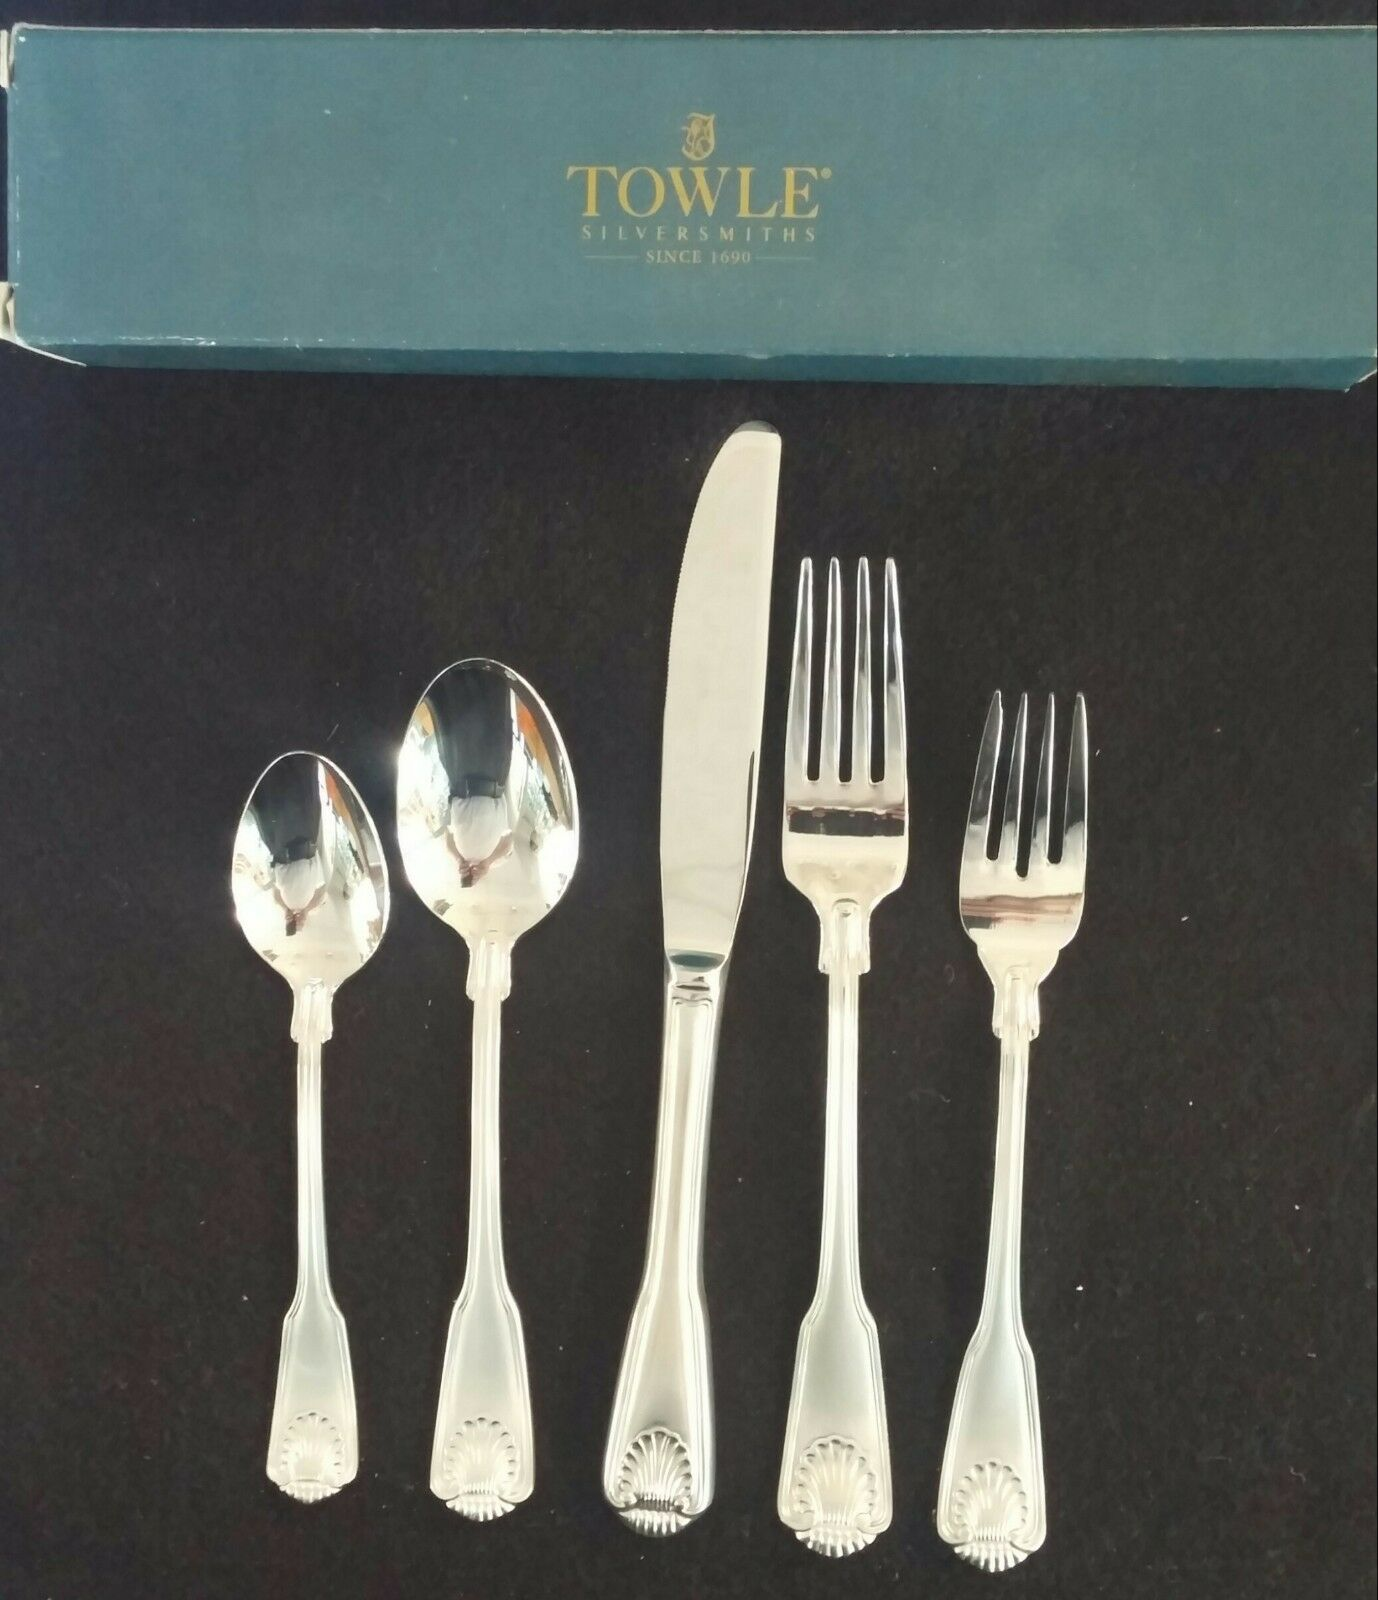 TOWLE LONDON Shell Inoxydable Coutellerie 5 pièces Place Setting 18 8 Made in Corée